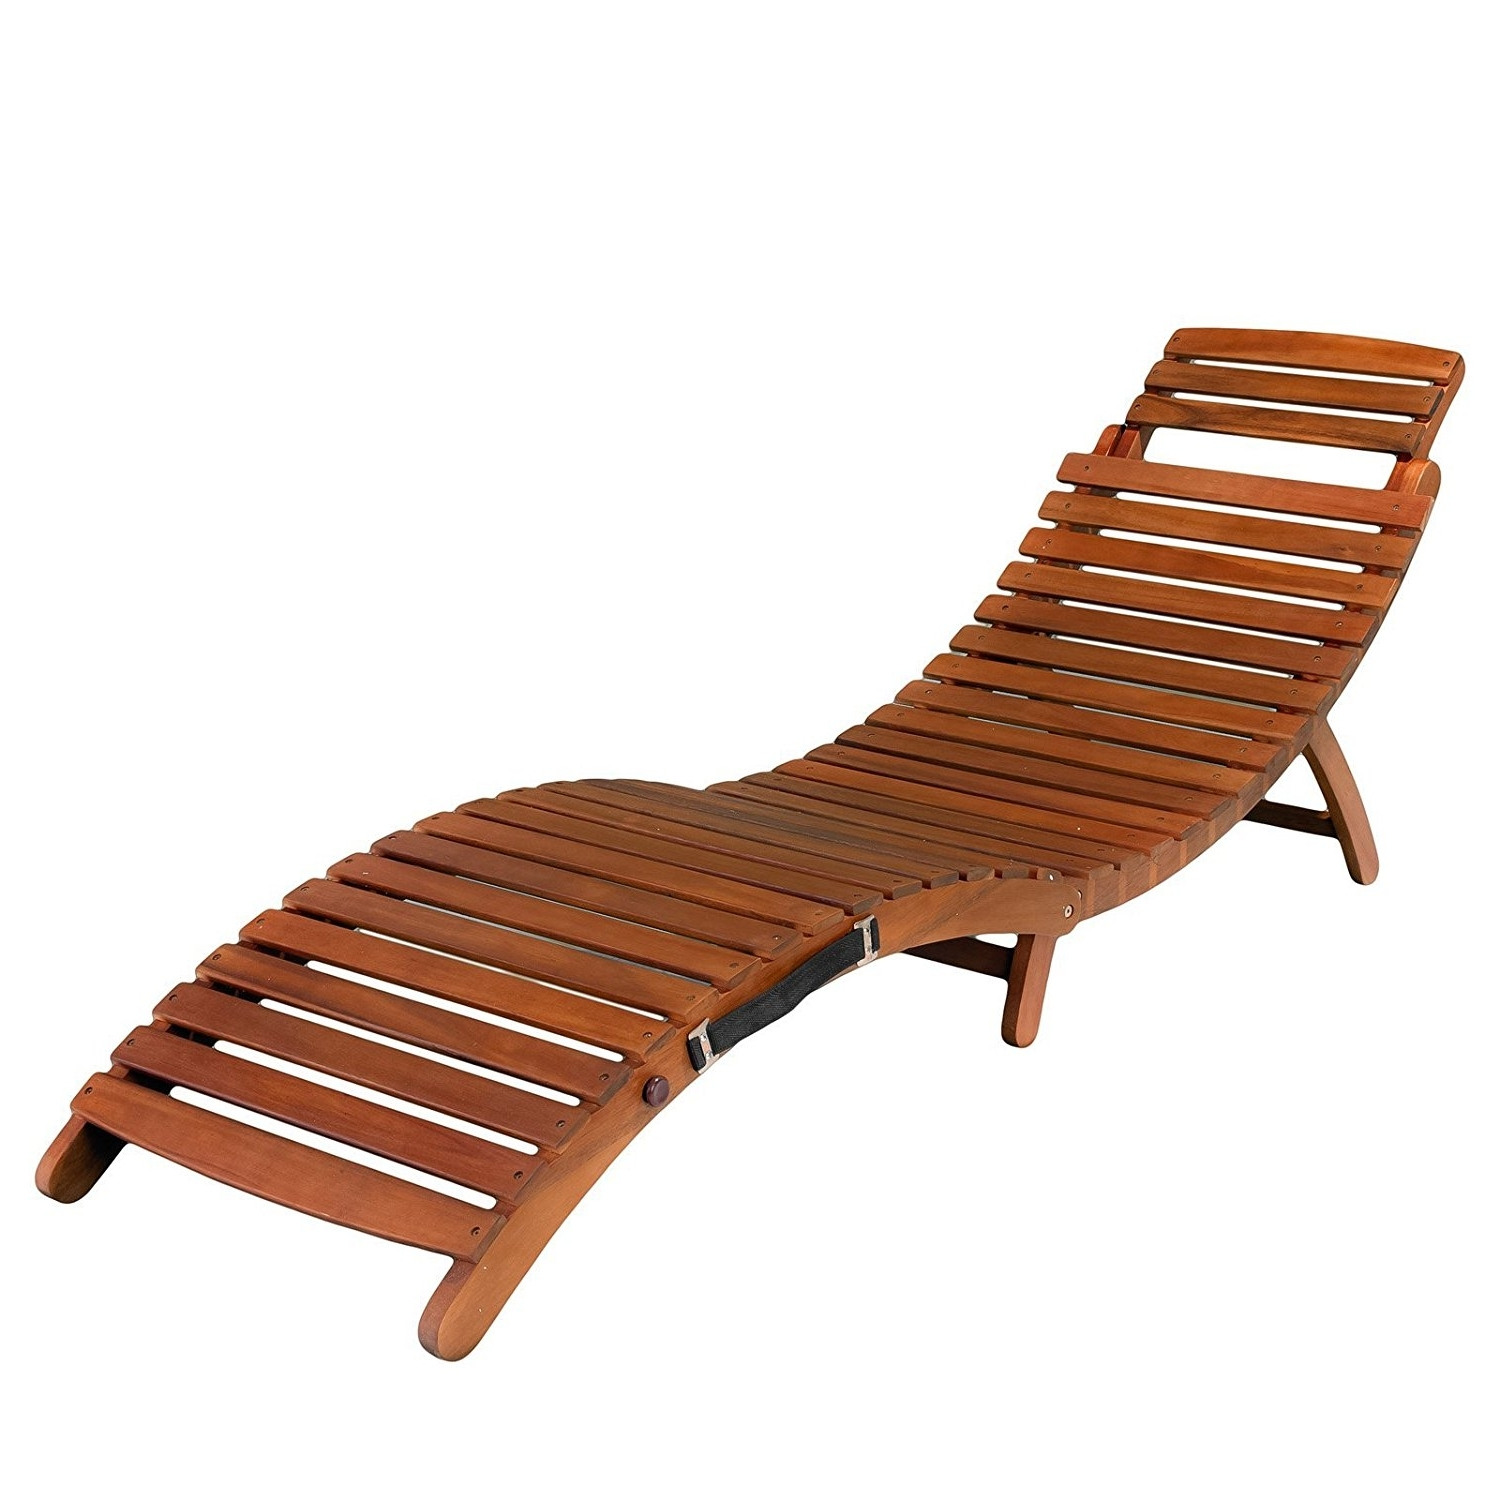 Amazon: Lahaina Outdoor Chaise Lounge: Garden & Outdoor With Regard To Well Known Chaise Lounge Chairs For Outdoors (View 1 of 15)